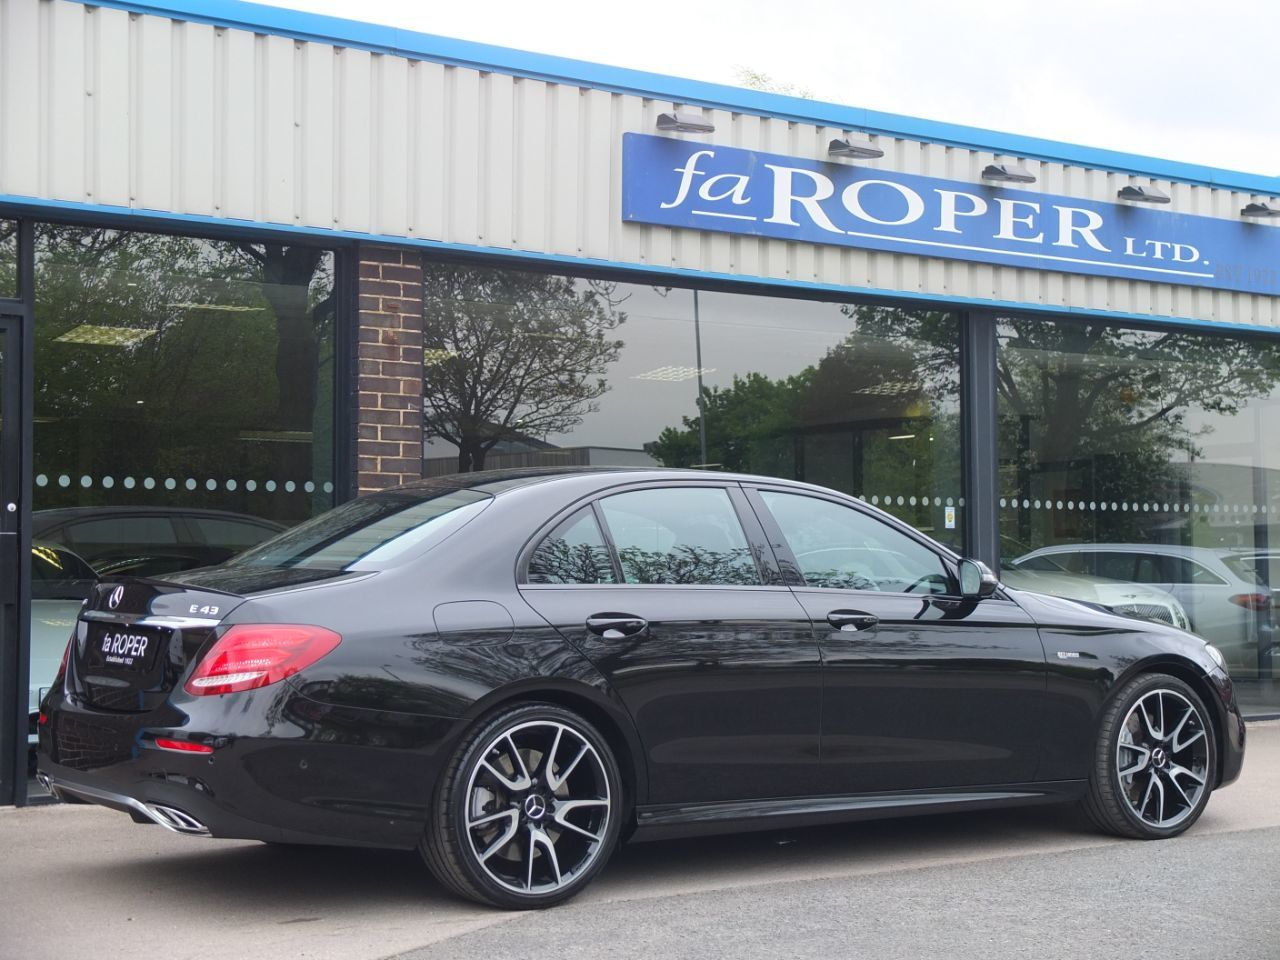 Mercedes-Benz E Class 3.0 E43 AMG 4MATIC 9G-tronic 401 hp Saloon Petrol Obsidian Black Metallic